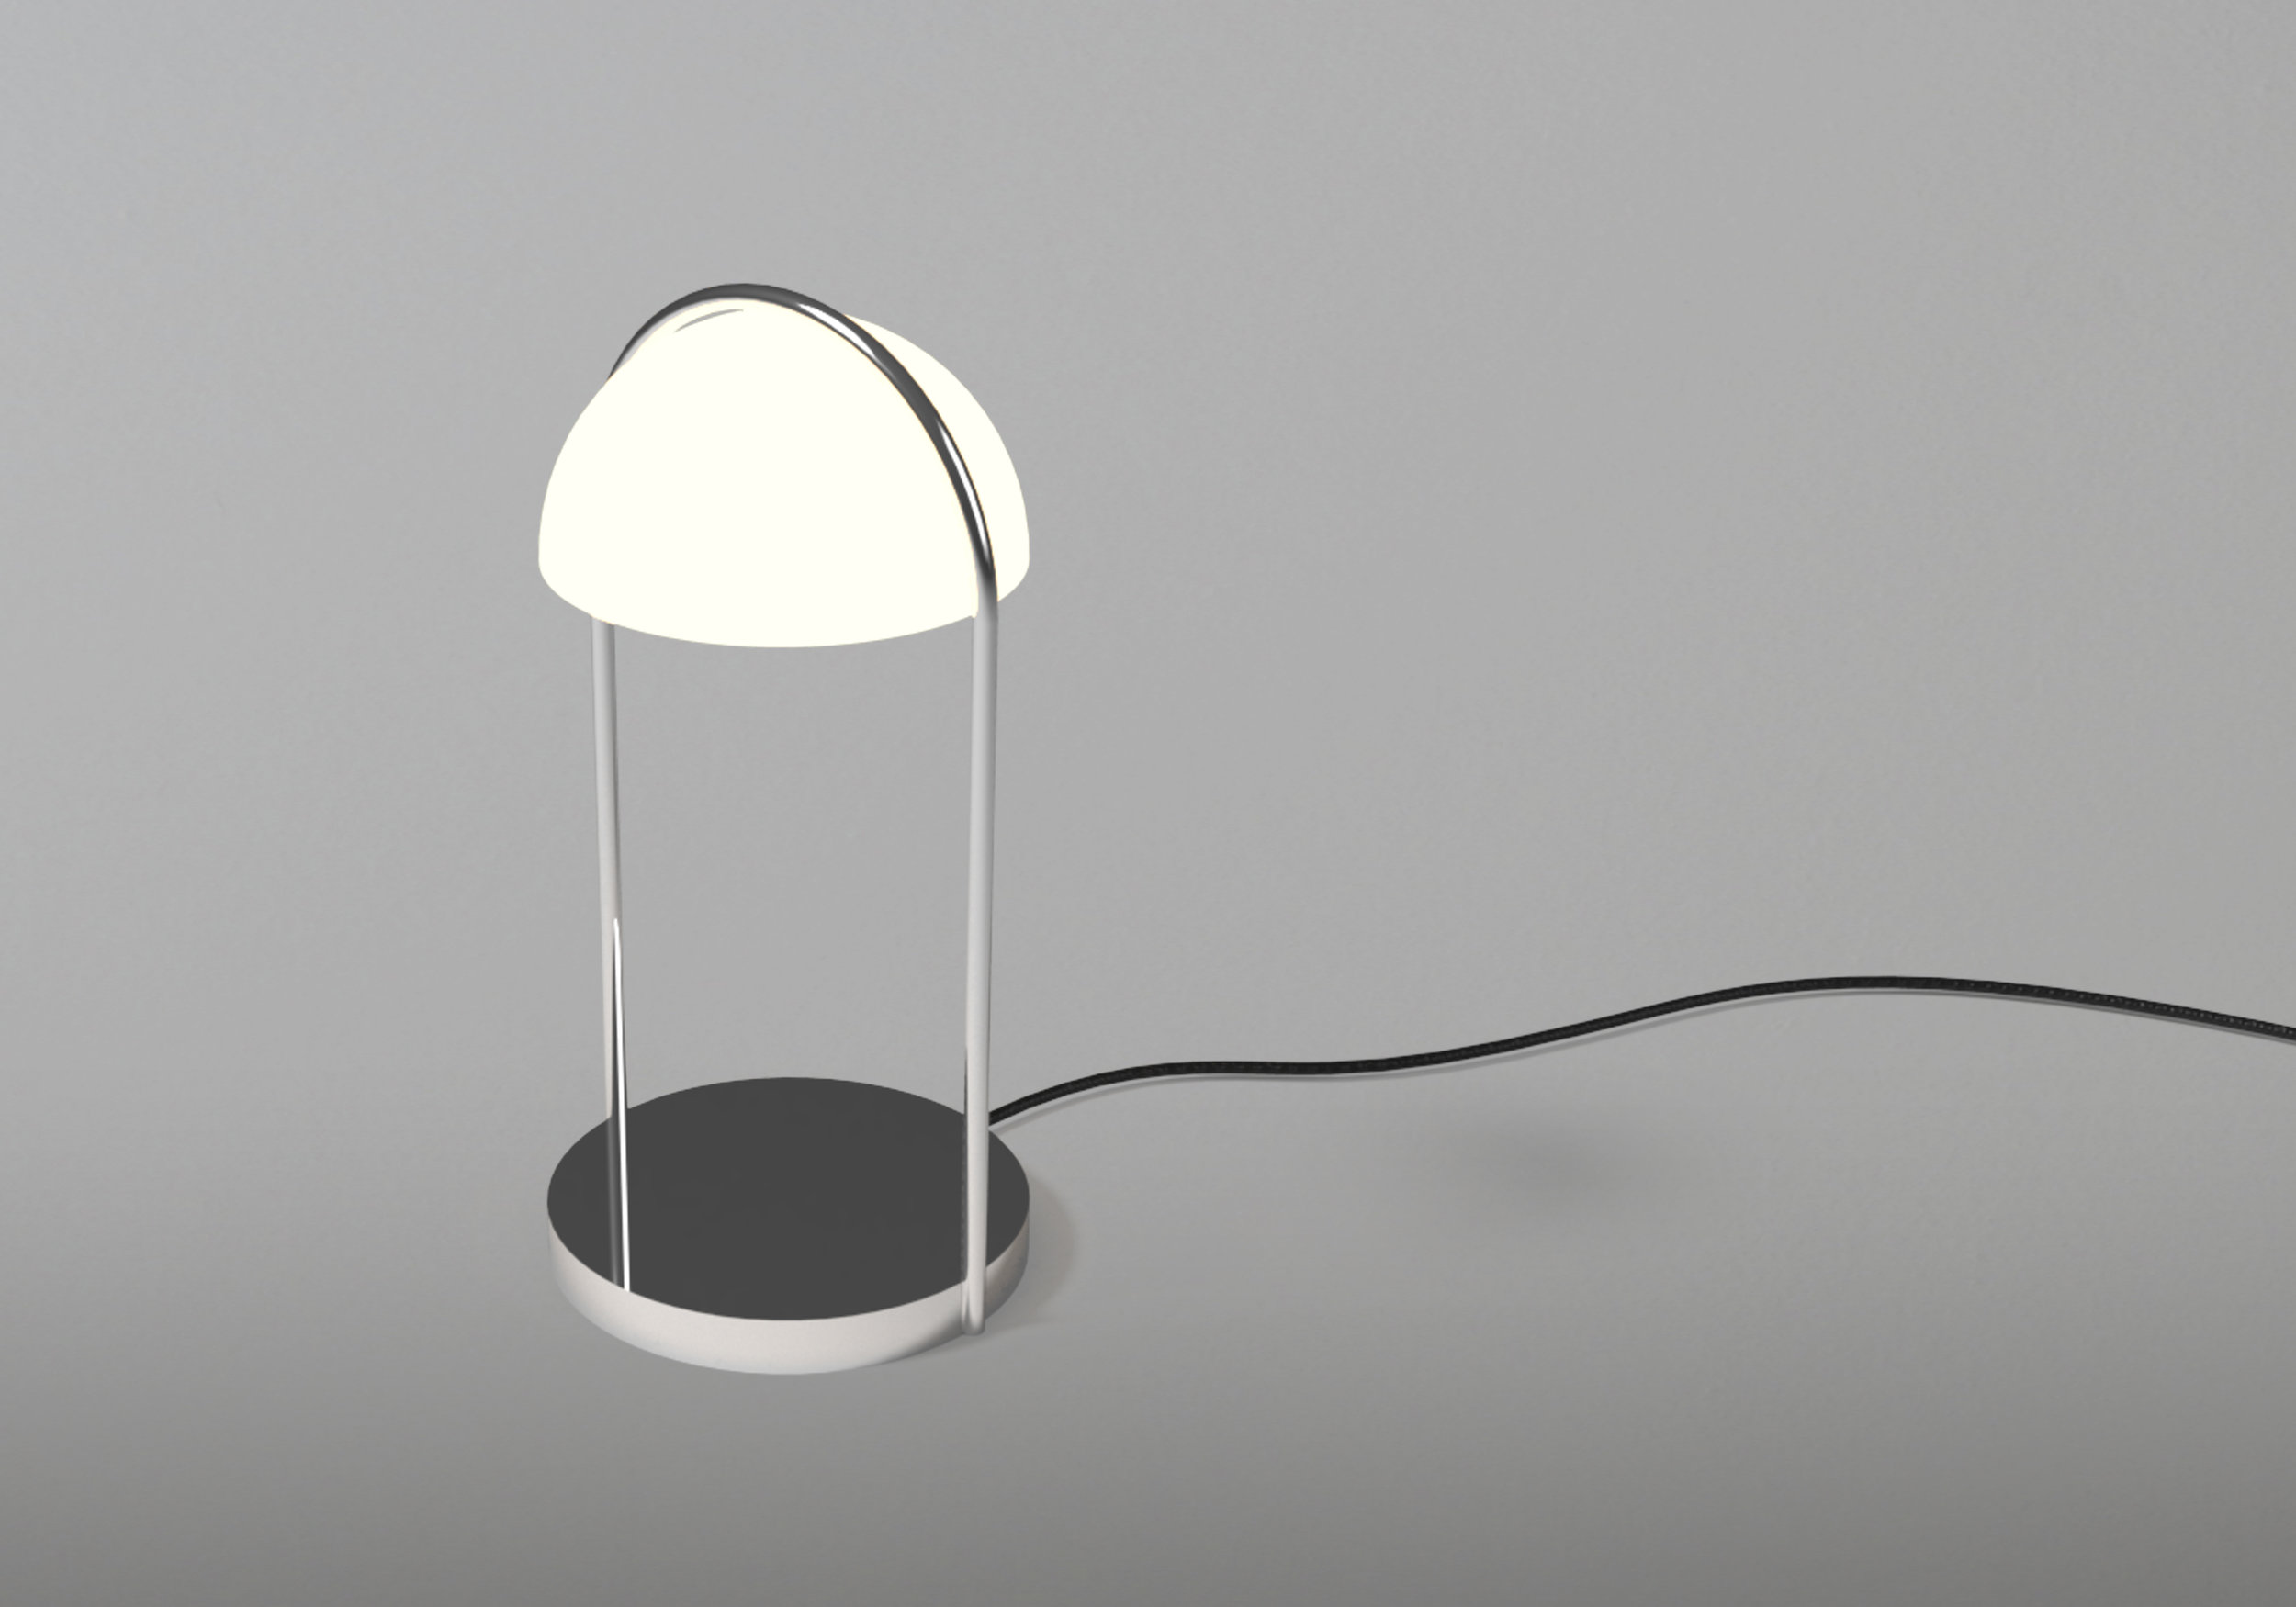 TABLE LAMP   Product design